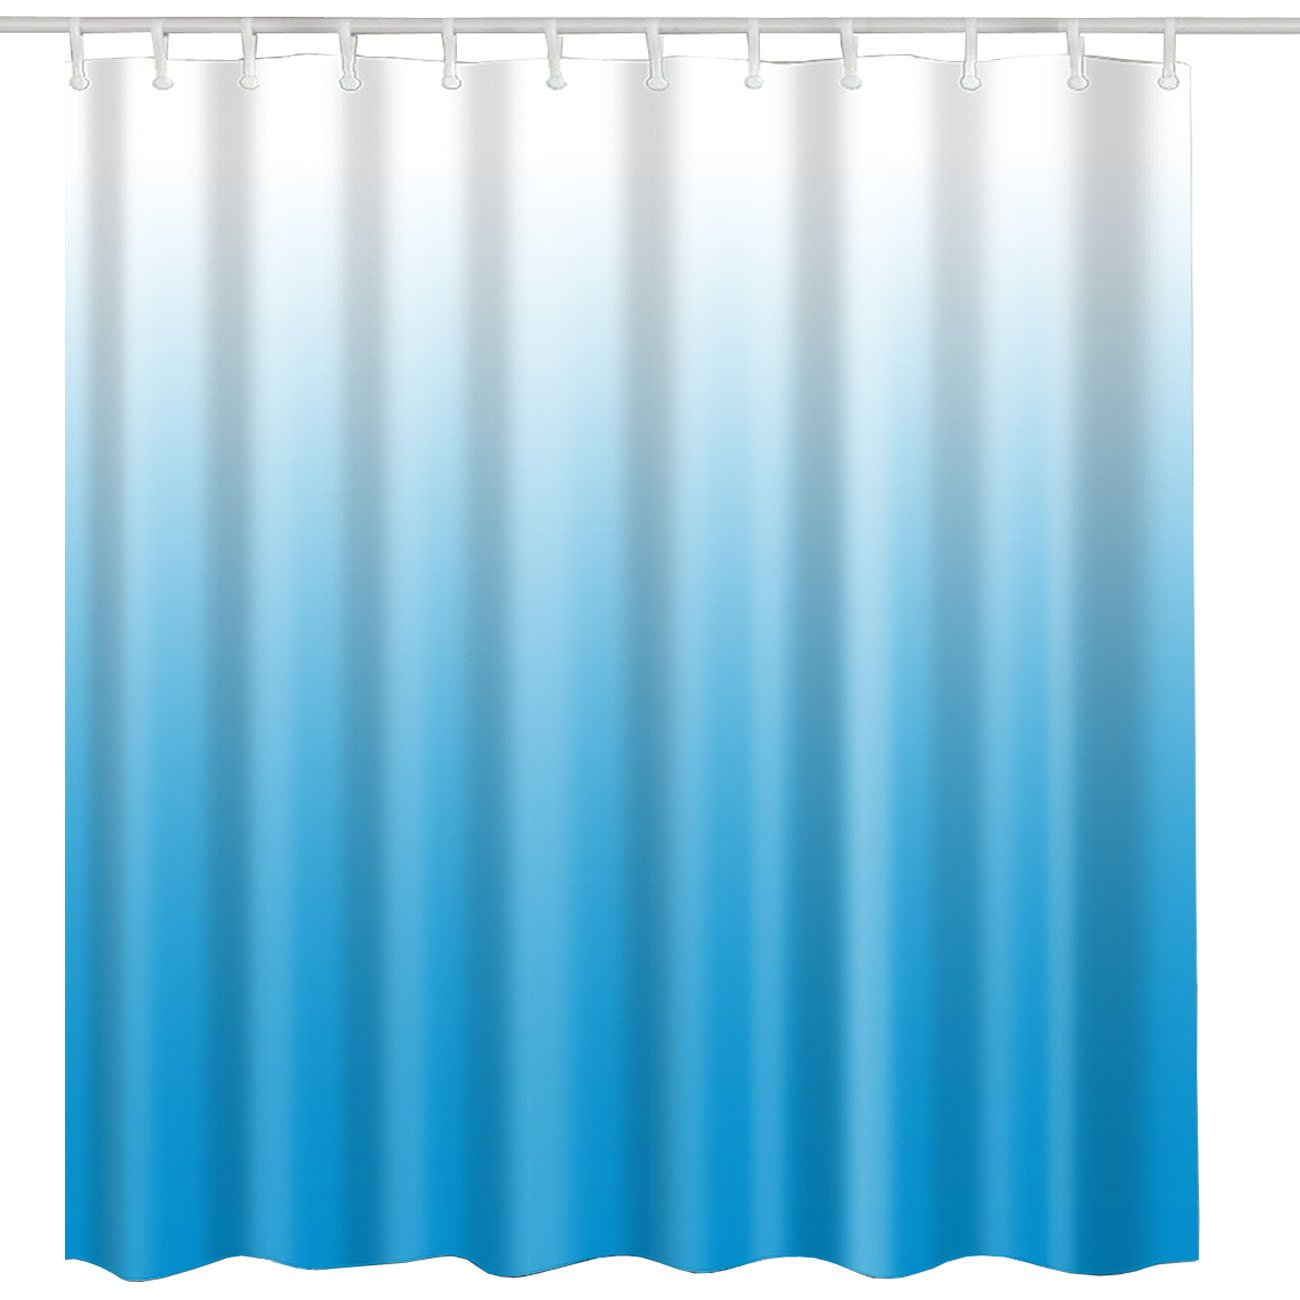 BROSHAN Blue Ombre Shower Curtain,Modern Blue Fashion Art Print Home Hotel Beautiful Decorative Bath Curtain,Polyester Waterproof Bathroom Decor Set with Hooks,72x72 Inch Long,White,Blue by BROSHAN (Image #1)